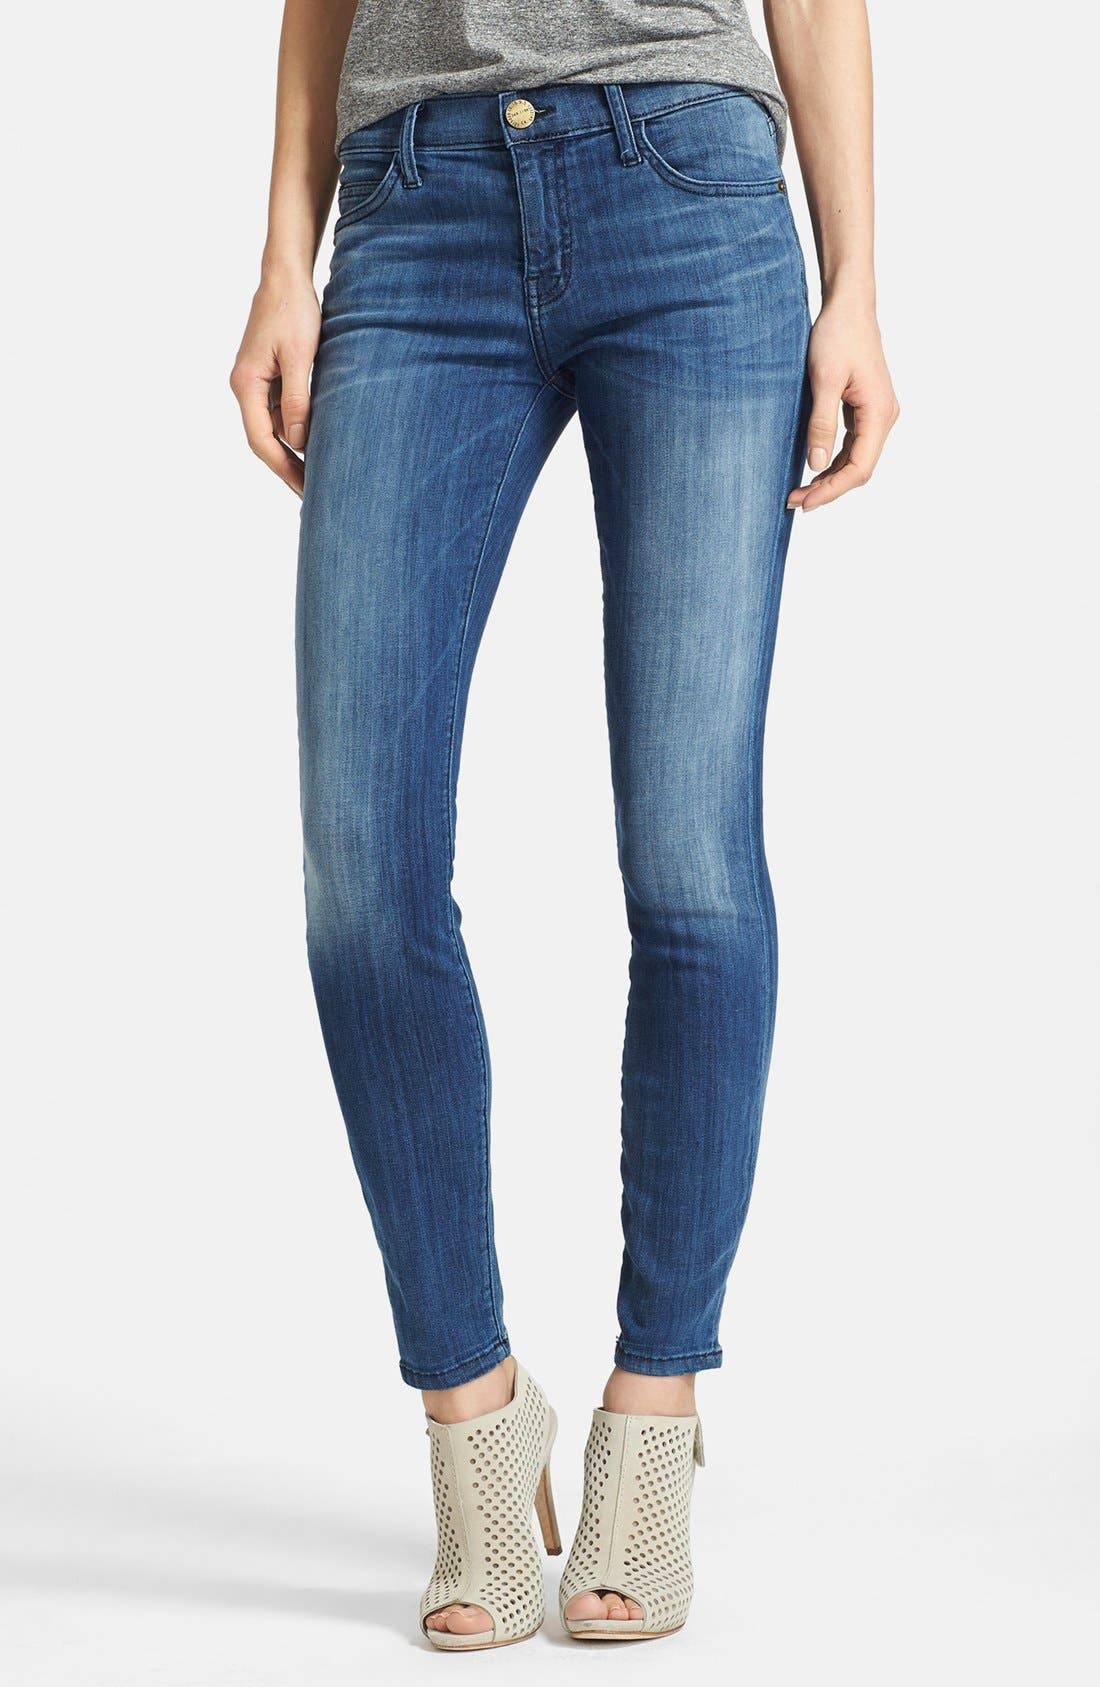 Alternate Image 1 Selected - Current/Elliott 'The Stiletto' Skinny Jeans (Sunfade)